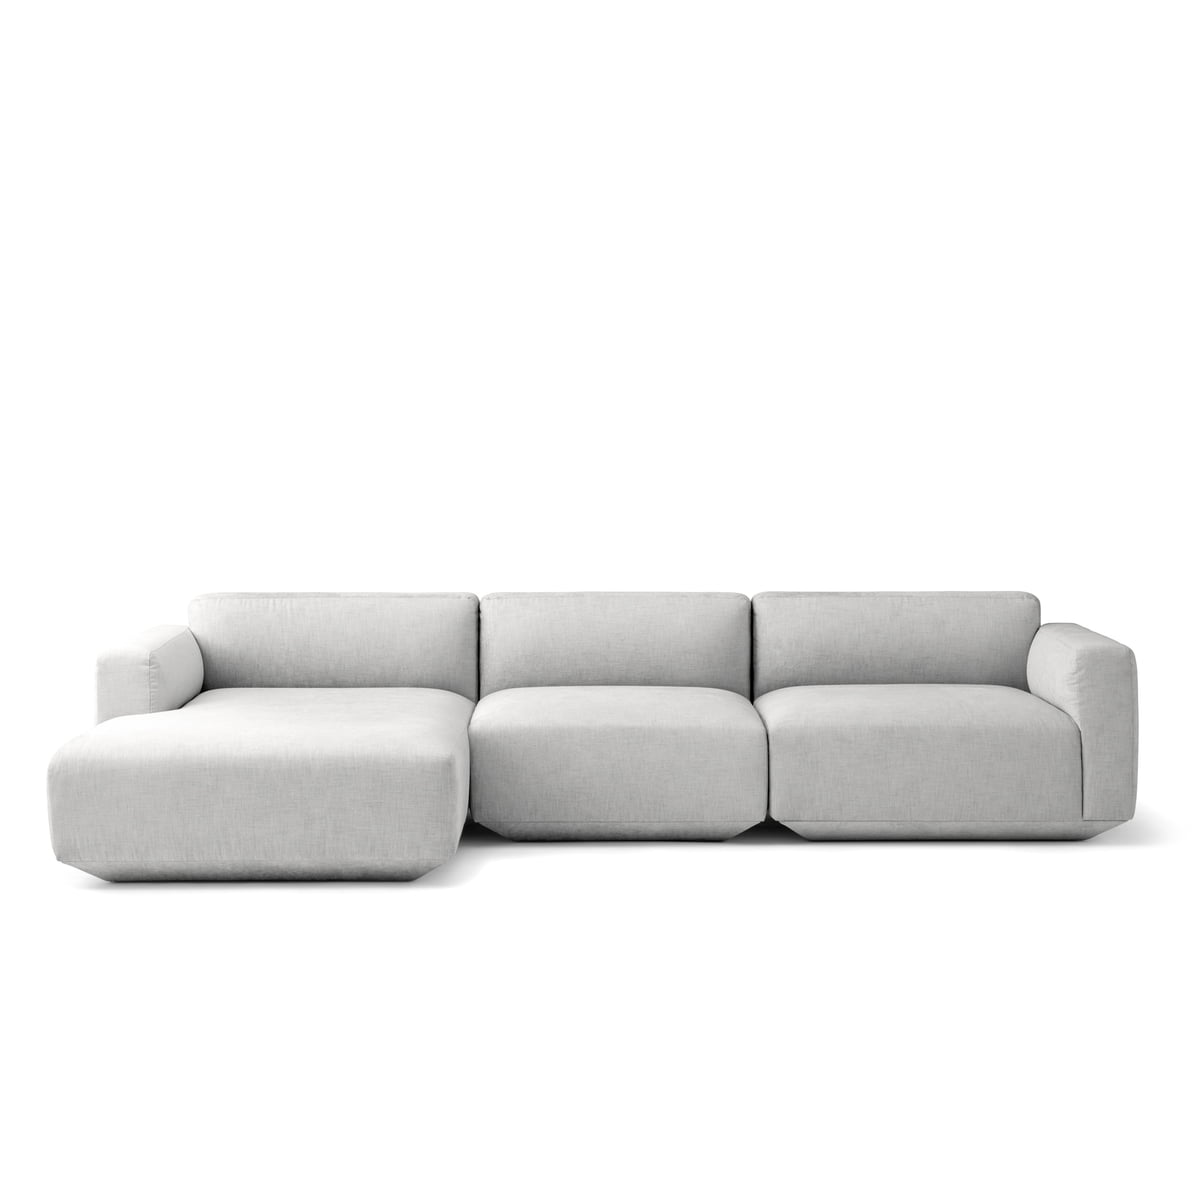 Eck Sofas Tradition Develius Eck Sofa Konfiguration E Hellgrau Kvadrat Maple 112